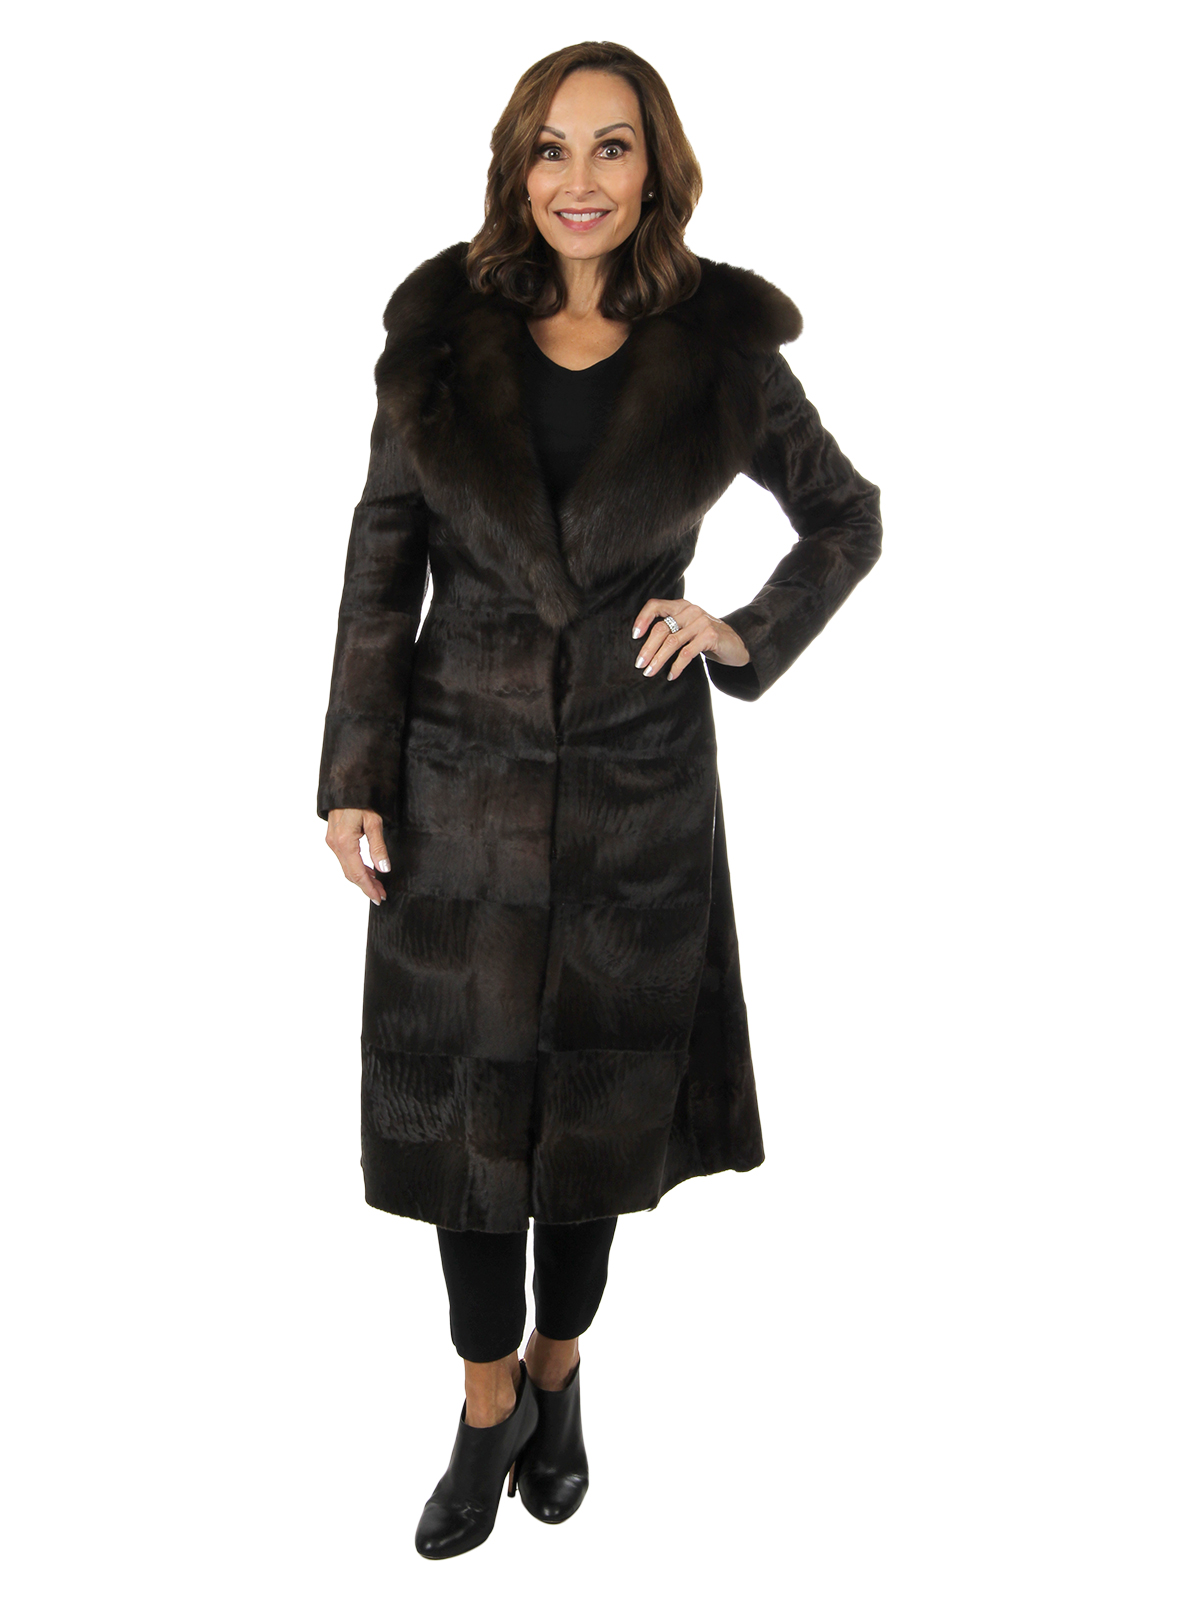 Woman's Dennis Basso Brown Broadtail Lamb Fur Coat with Sable Collar